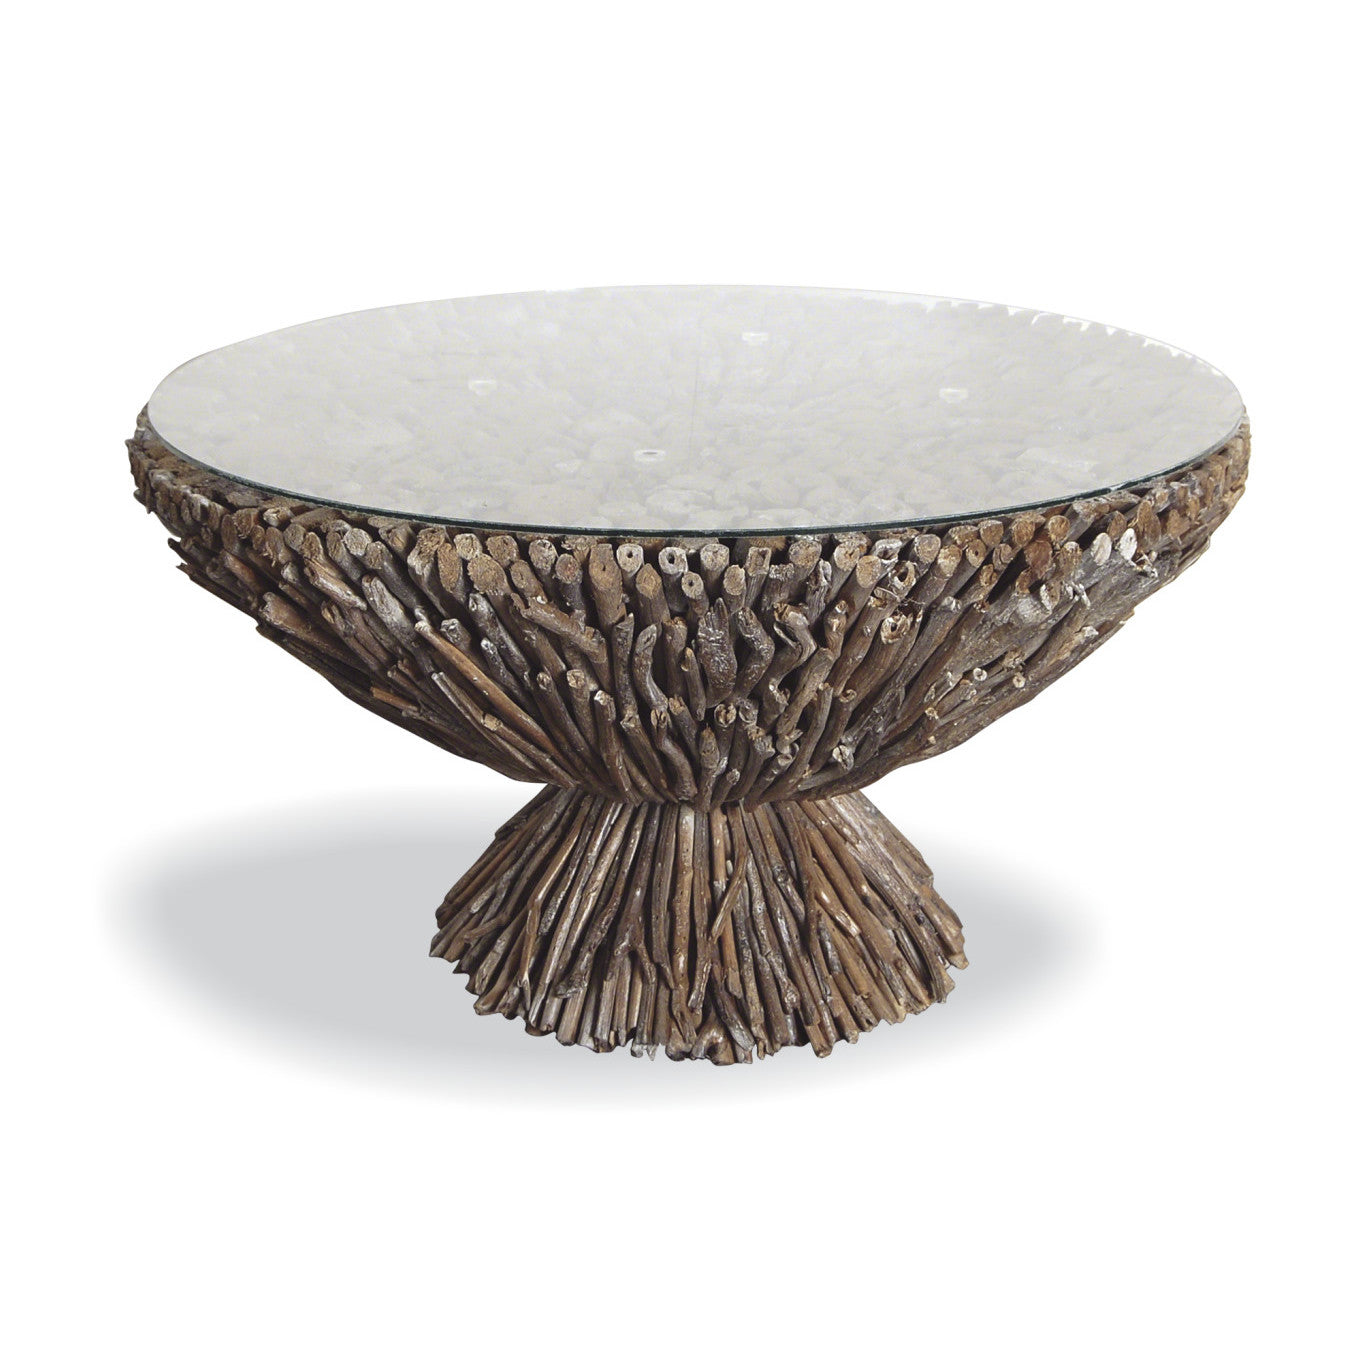 Driftwood And Glass Round Coffee Table Shropshire Design